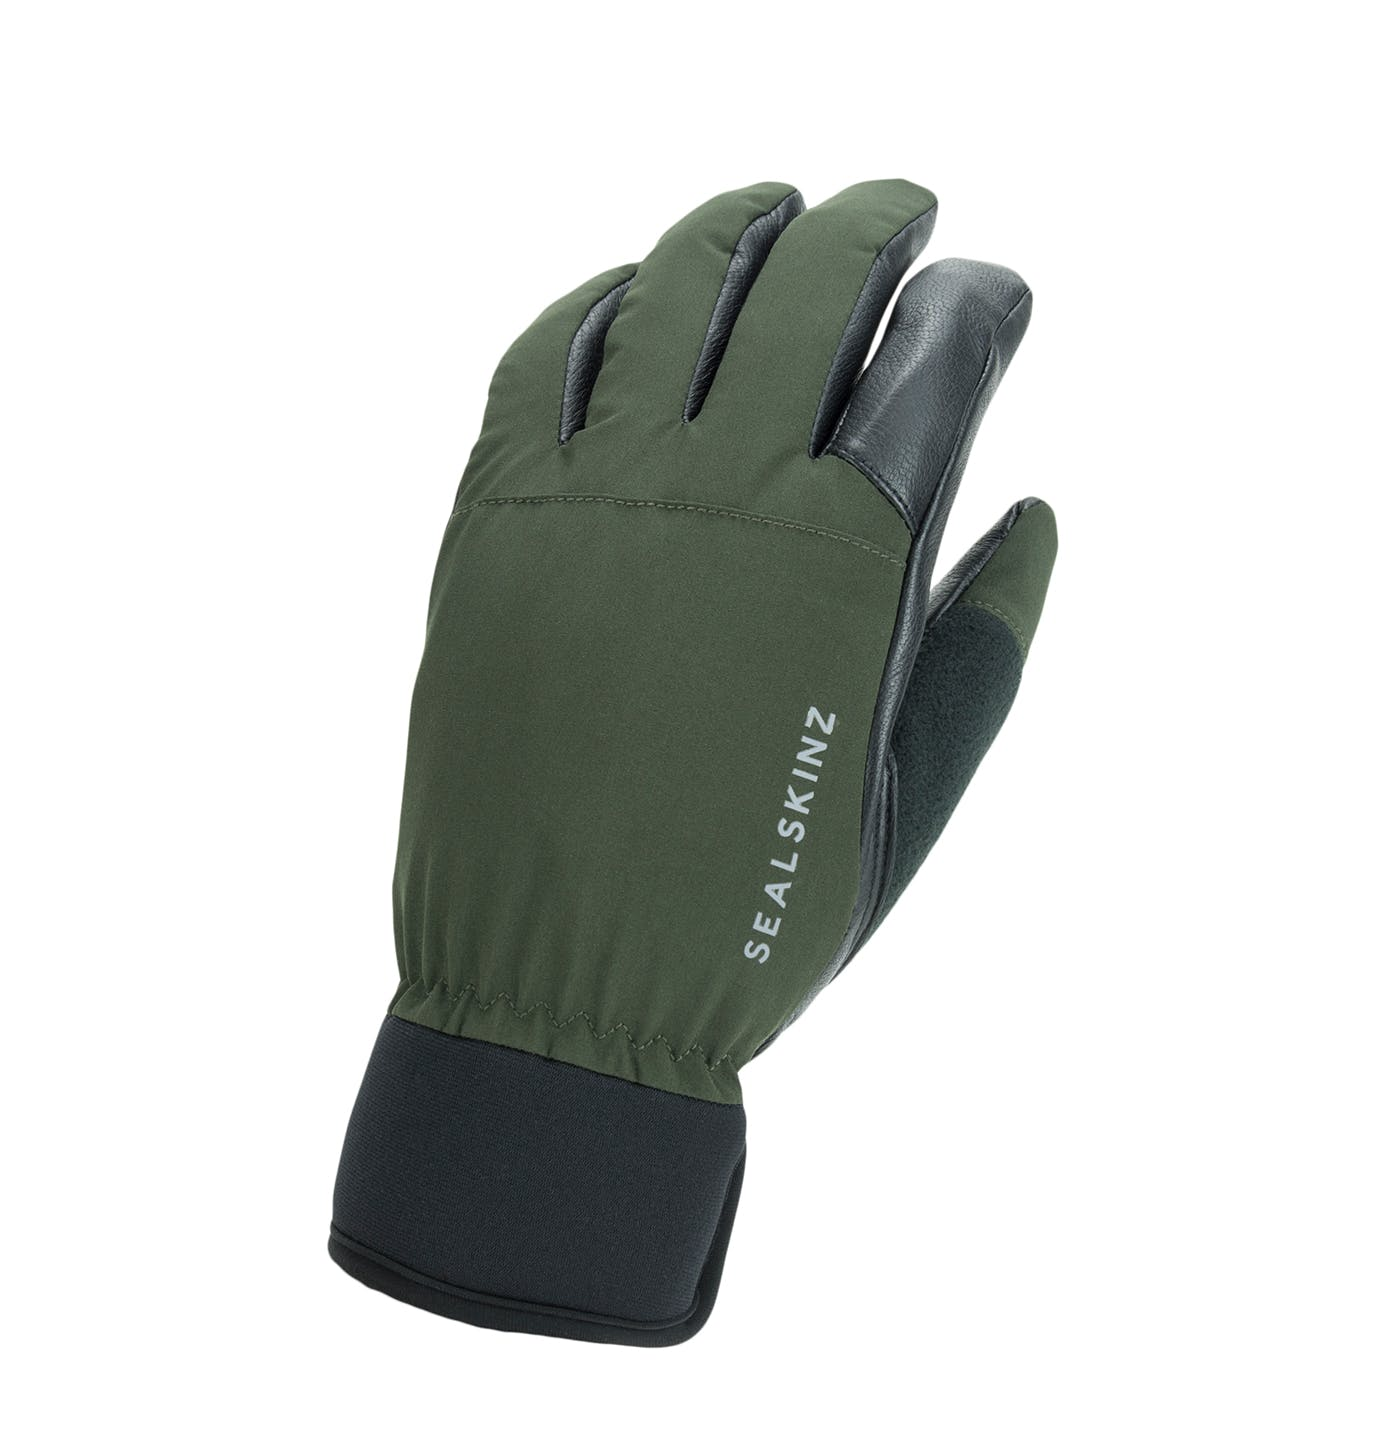 Waterproof All Weather Hunting Glove